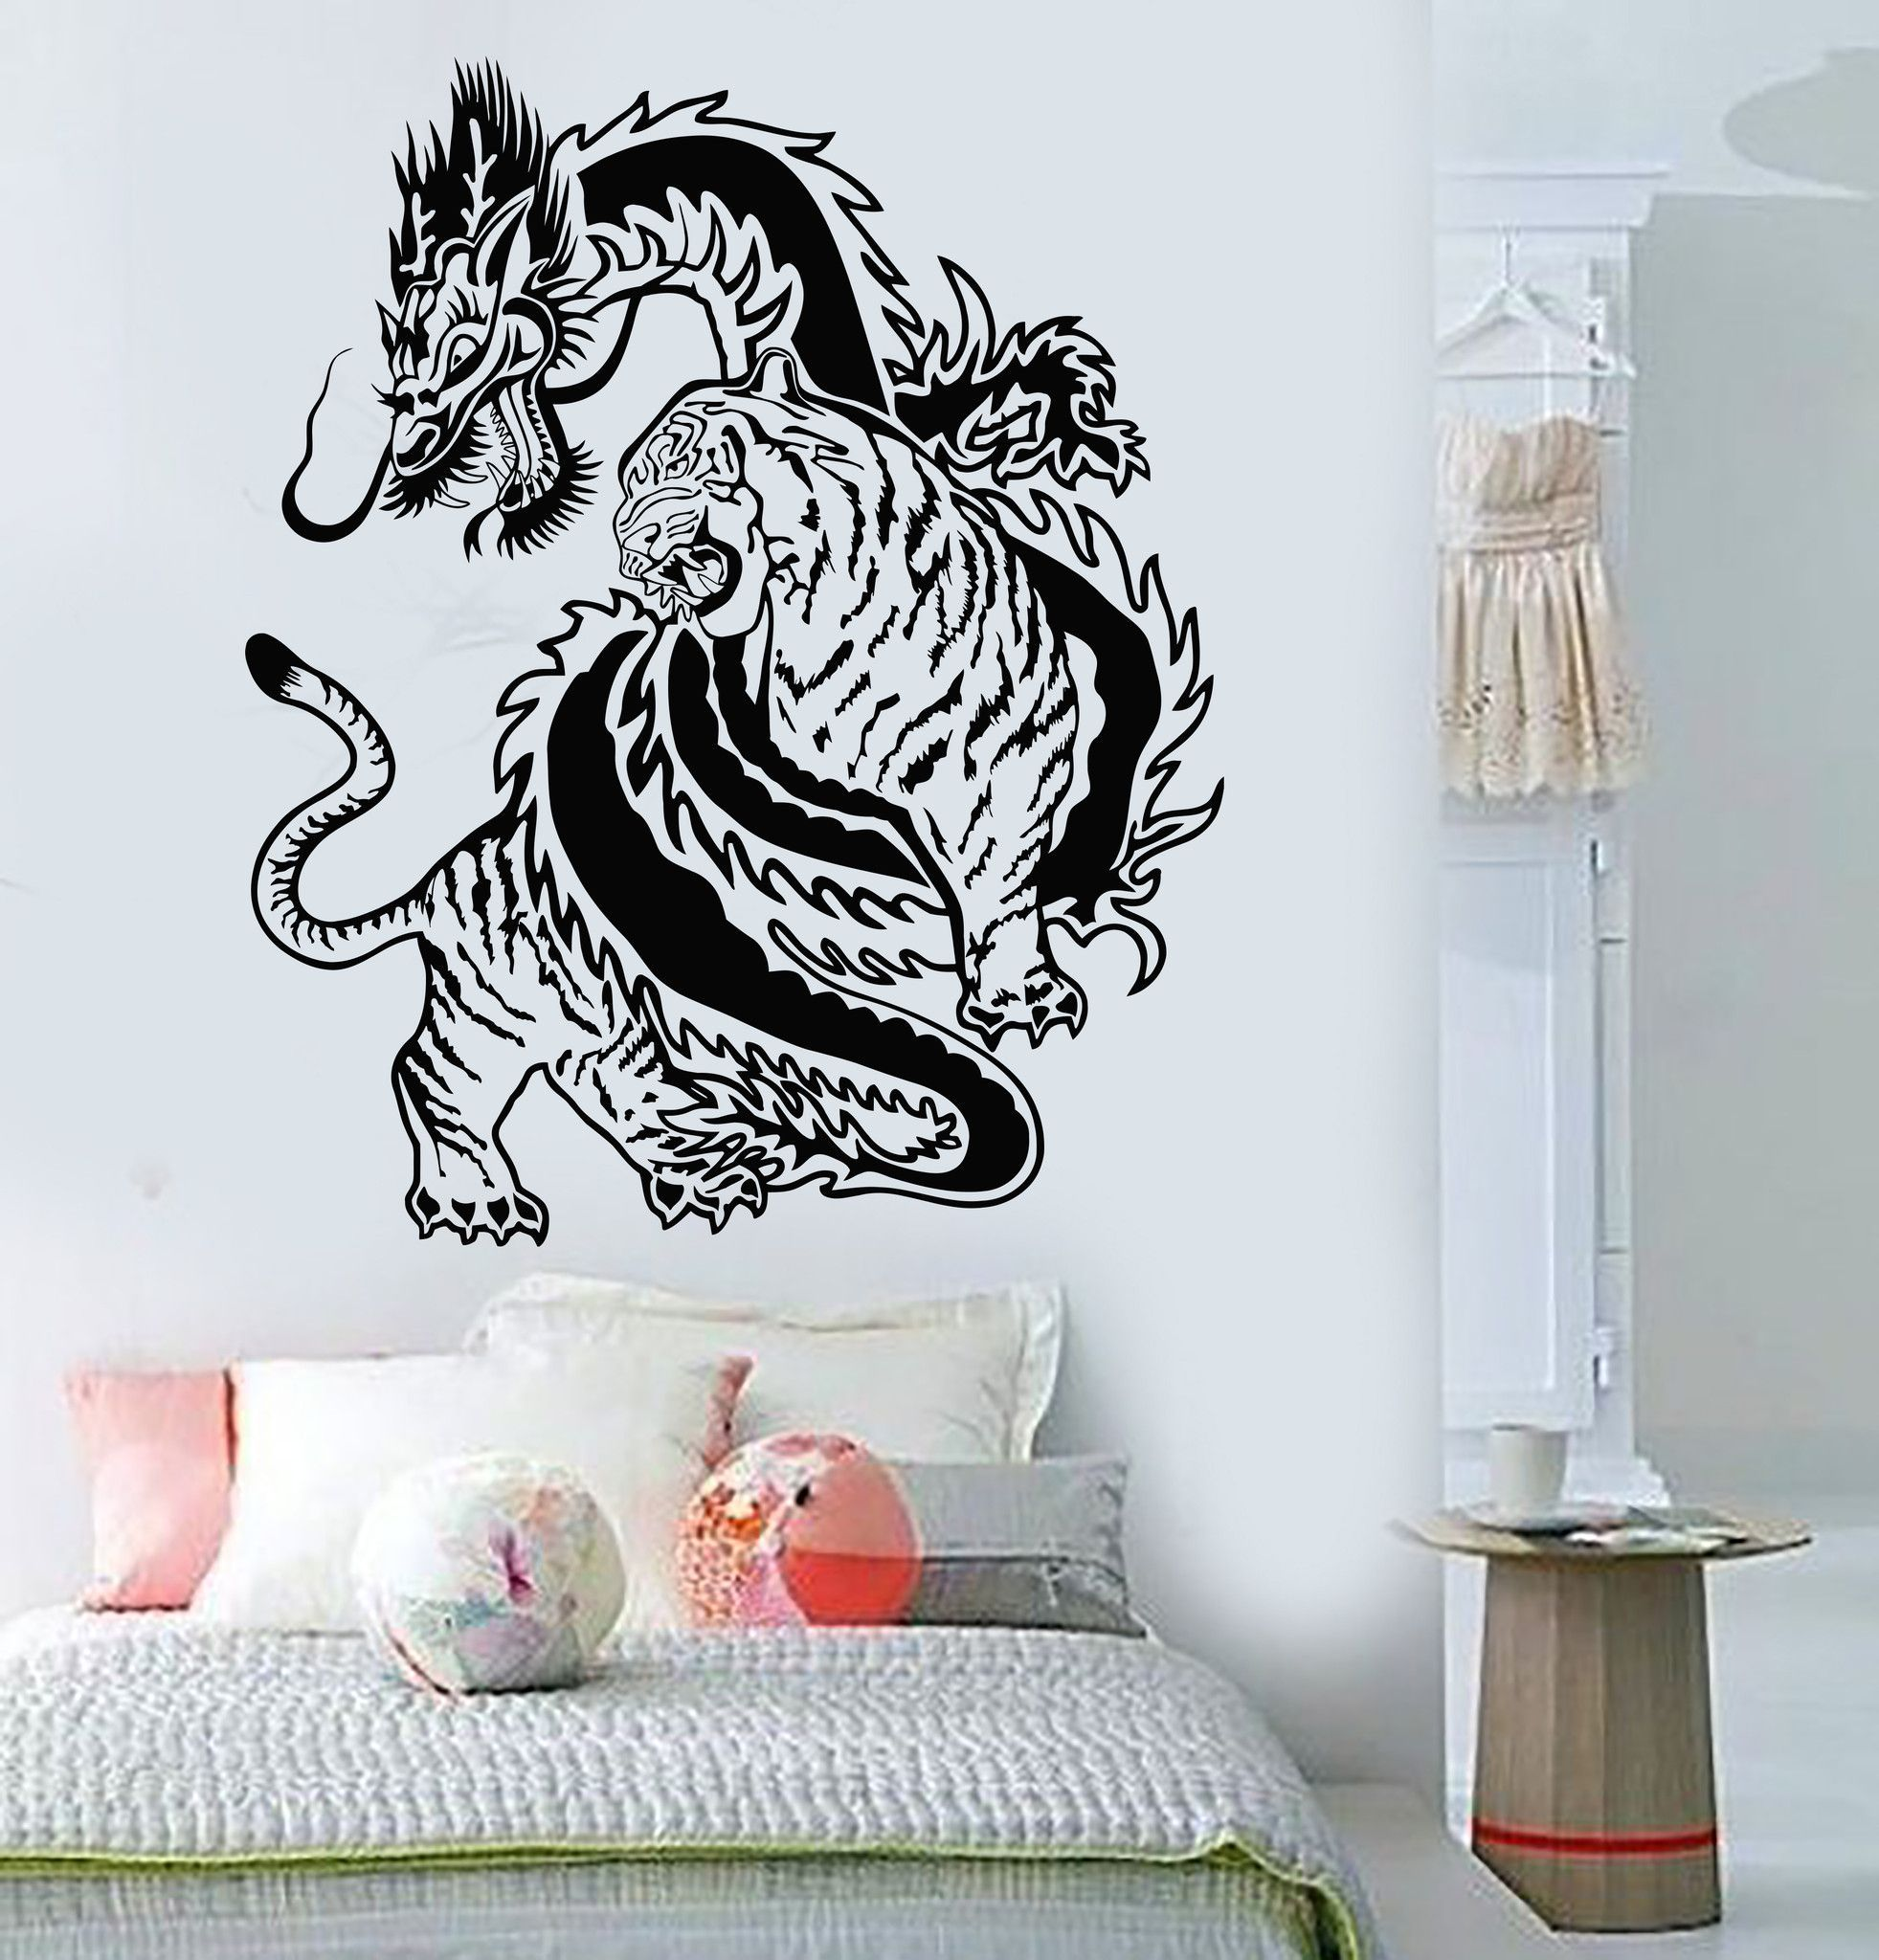 Vinyl Wall Decal Chinese Dragon Tiger Fight China Asian Art - Vinyl wall decals asian